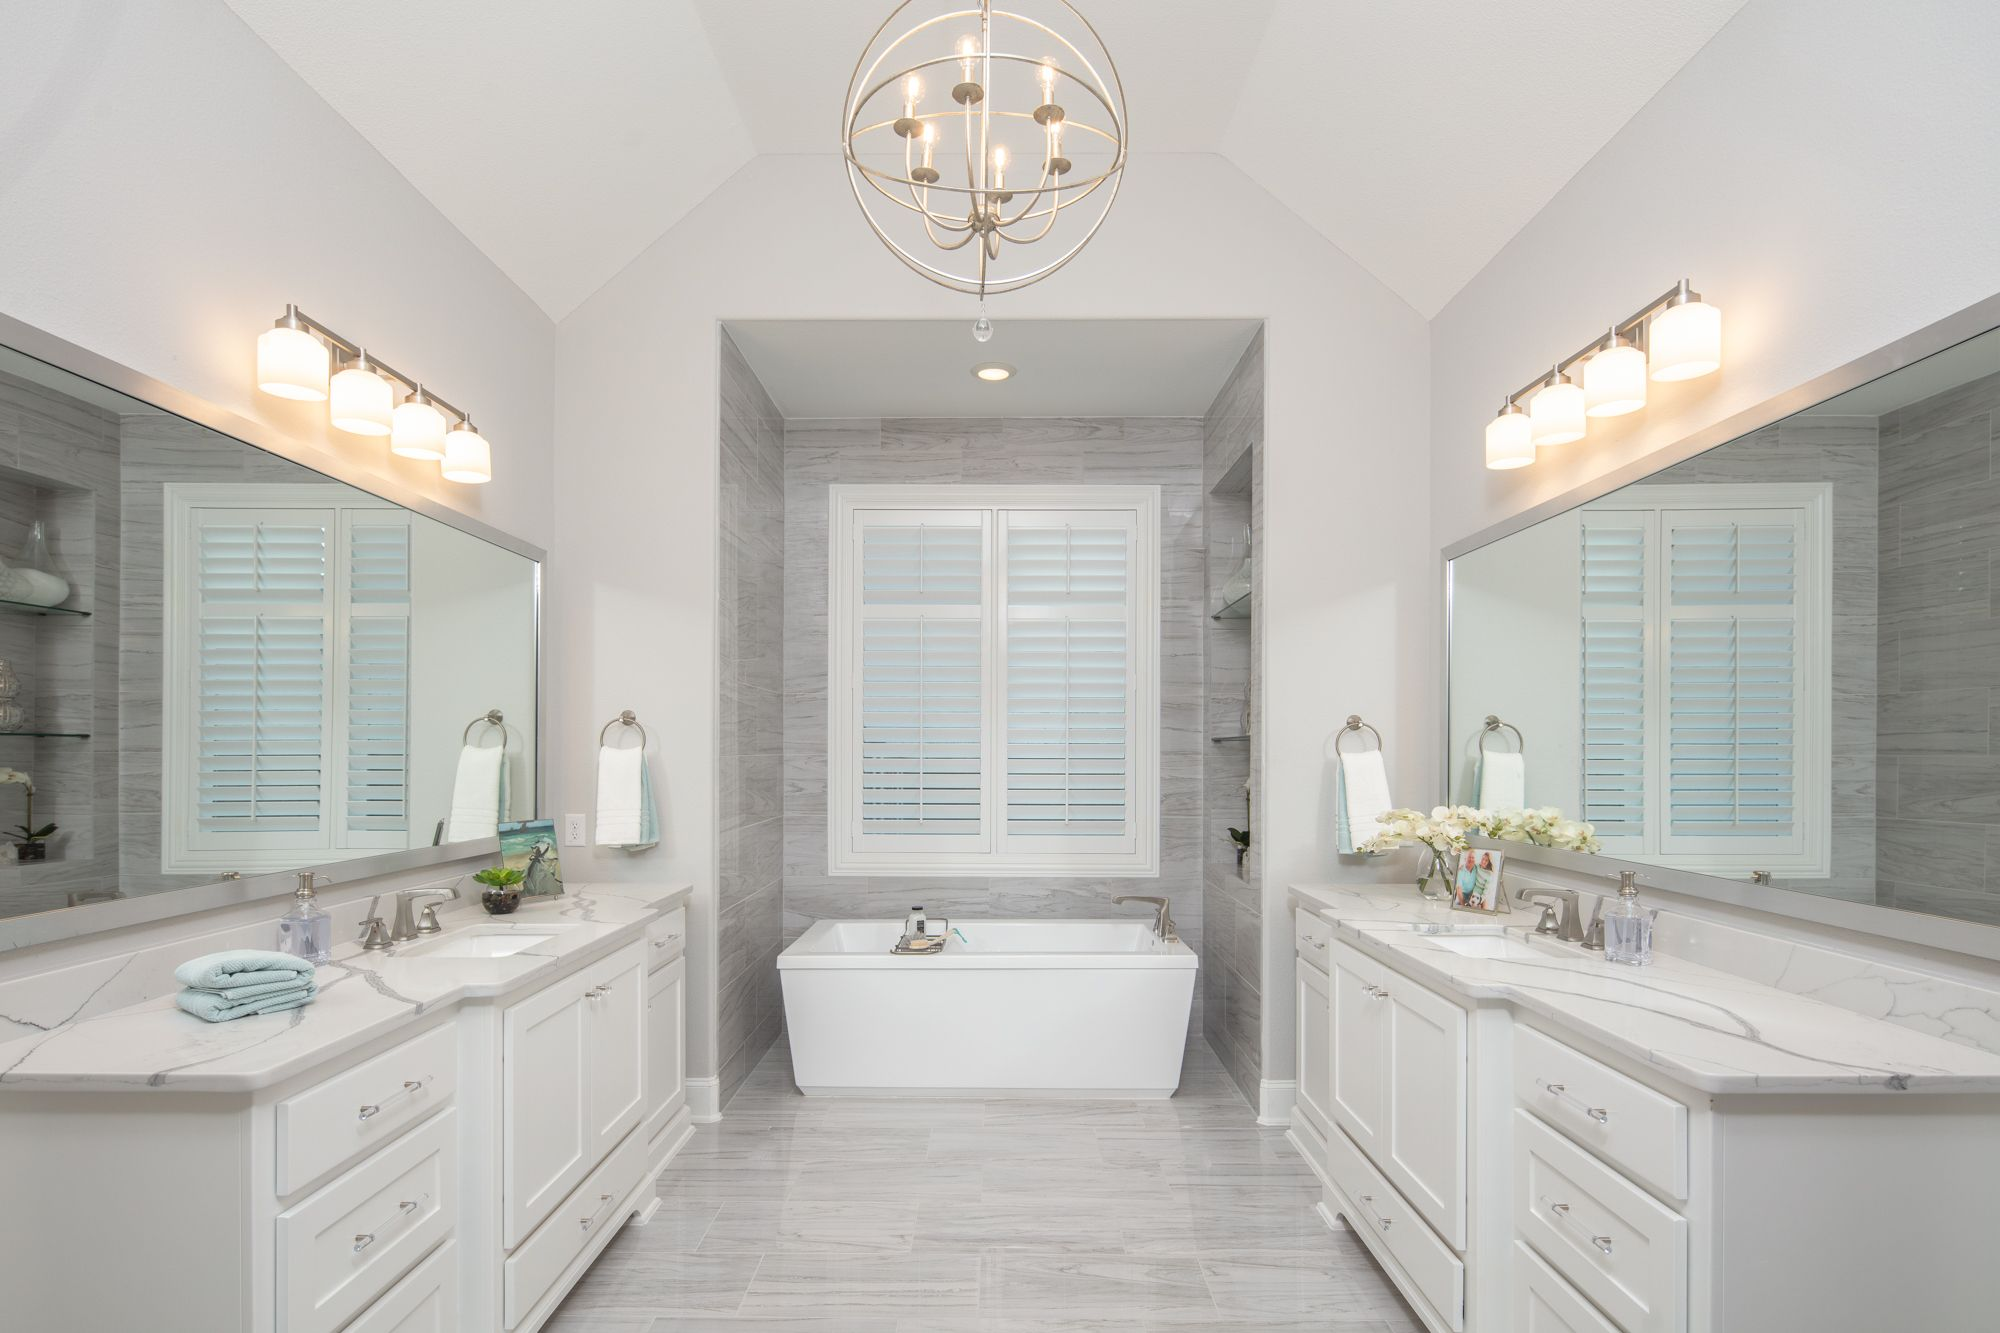 Bathroom featured in the B807 By BelclaireHomes in Dallas, TX